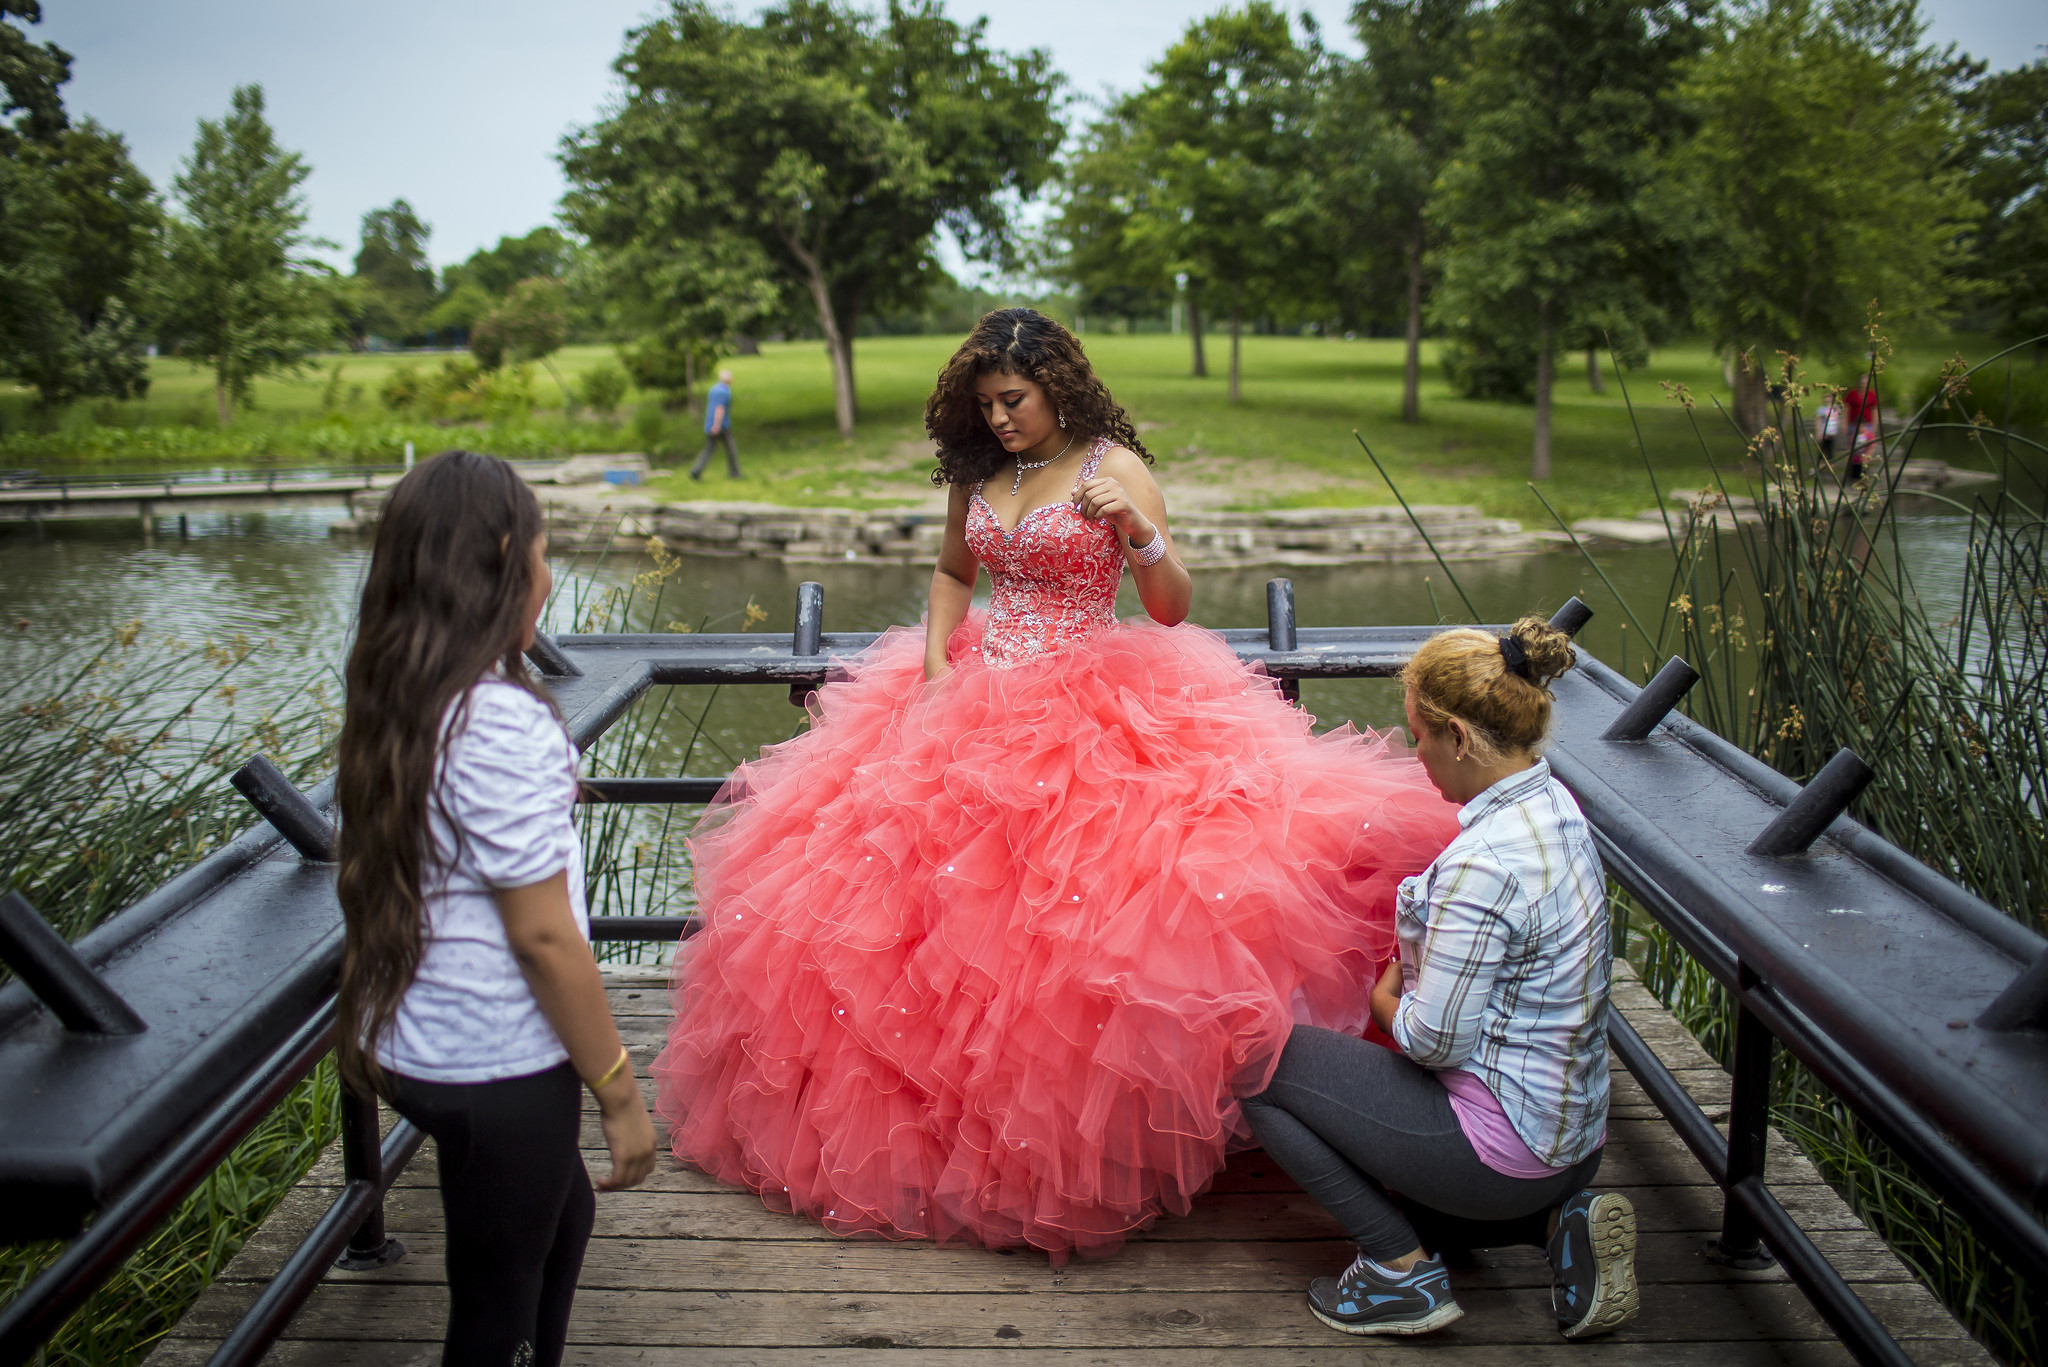 Coming Of Age Ritual In Riis Park Chicago Tribune